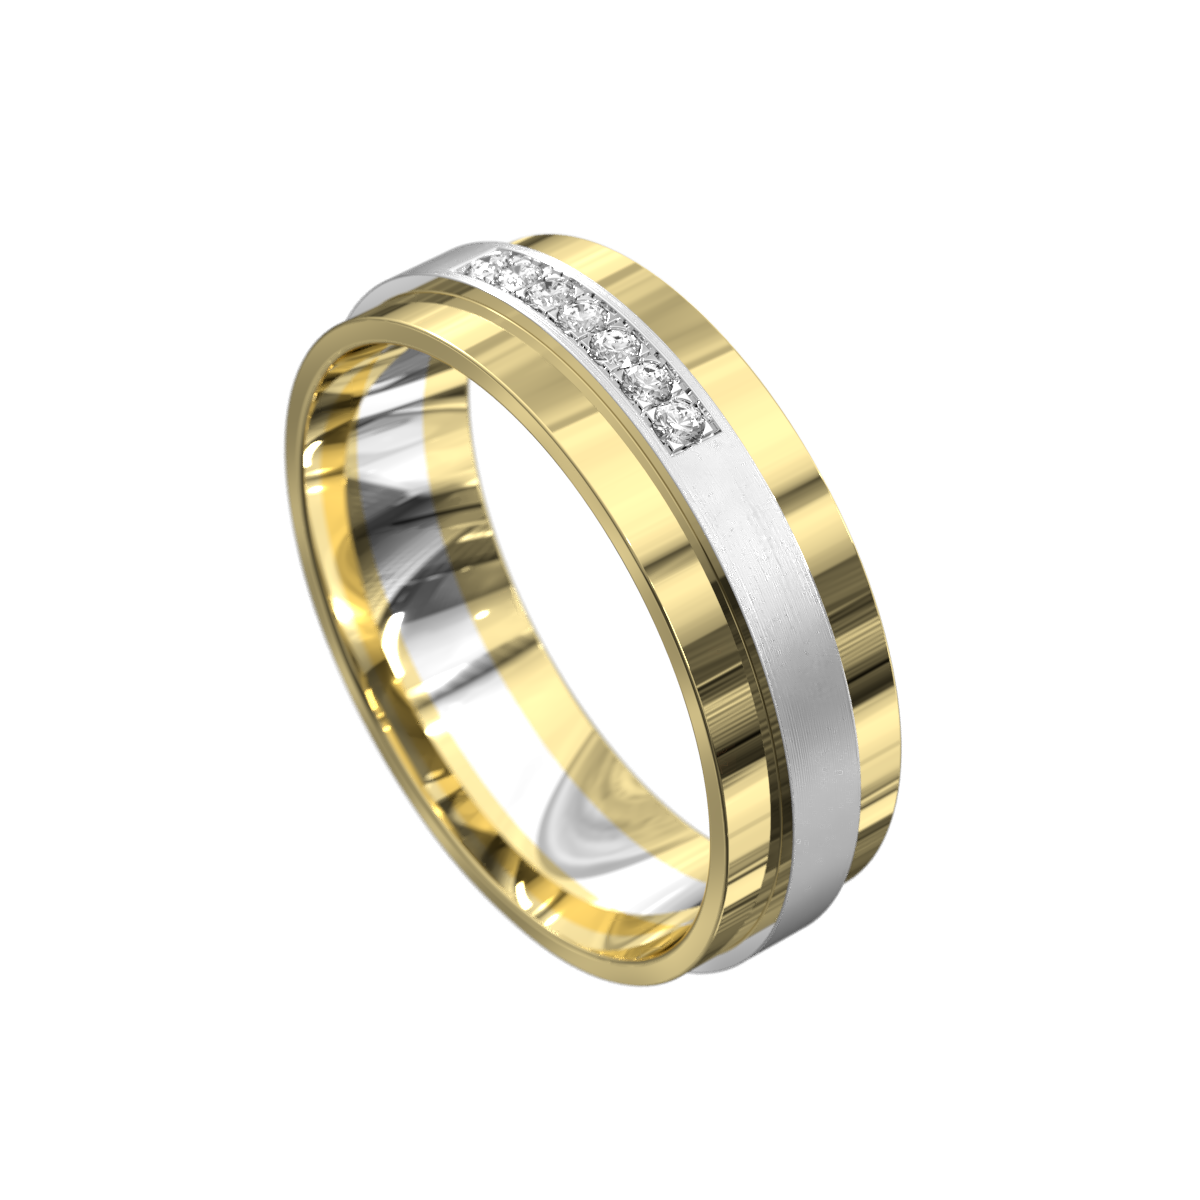 Polished Yellow and White Gold Mens Wedding Ring